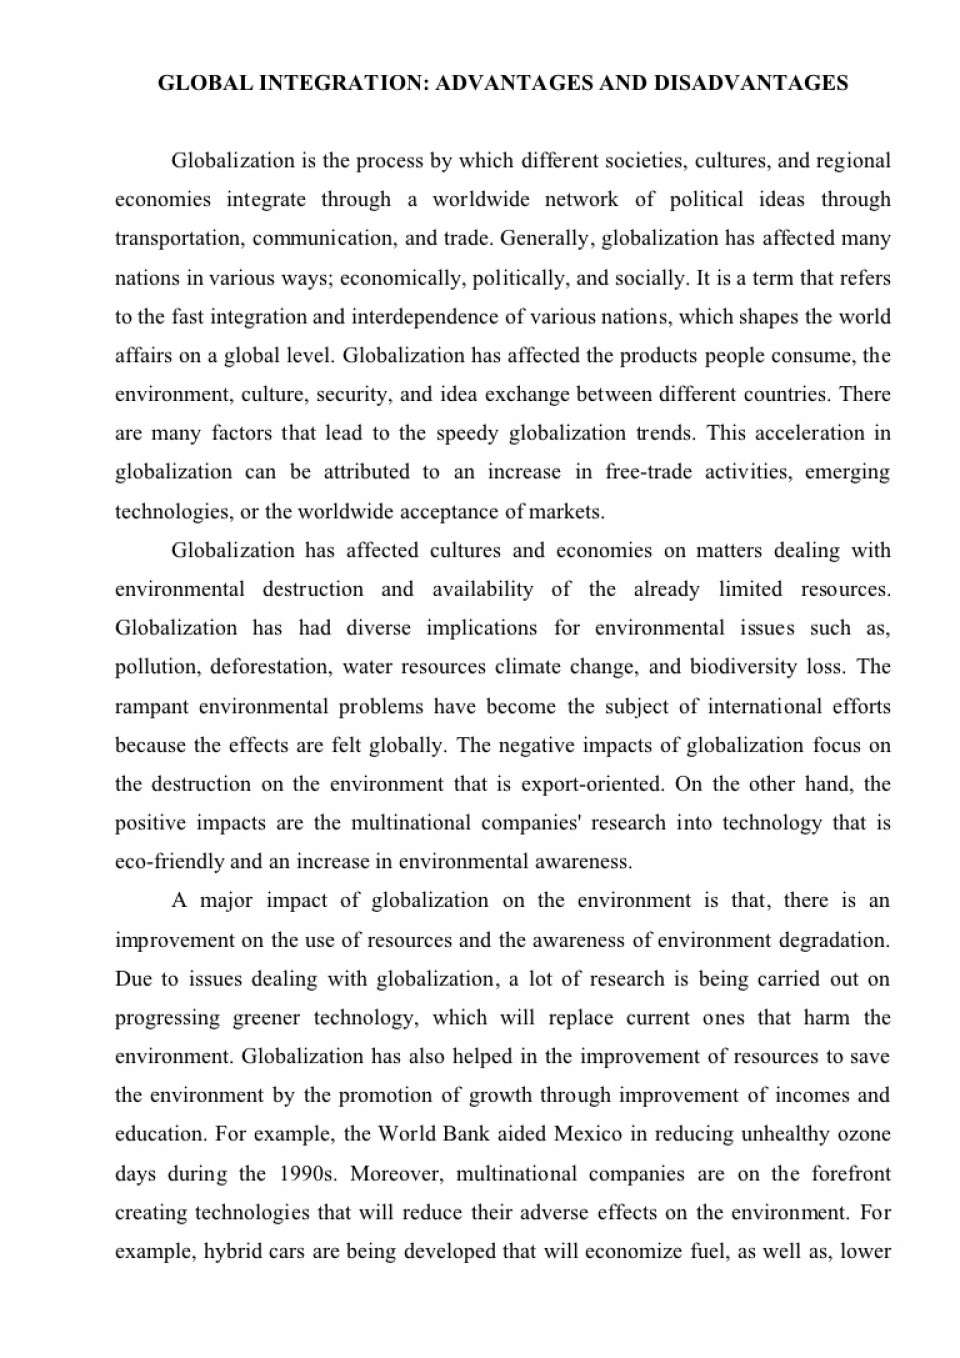 021 Essayglobalization Phpapp02 Thumbnail Essay Example Advantage And Disadvantage Of Shocking Science Advantages Disadvantages In Marathi Language With Quotes 960